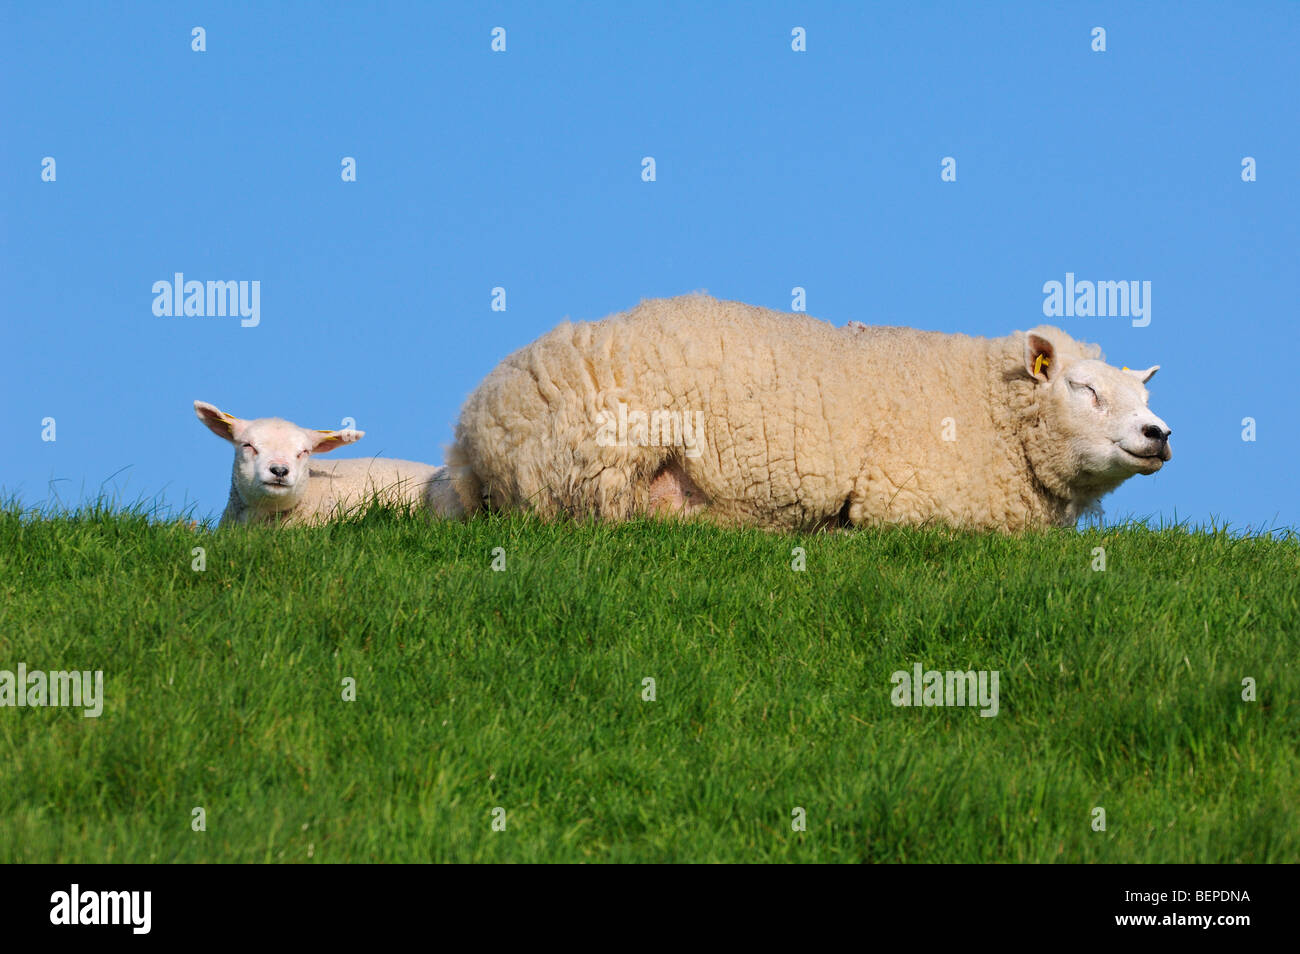 Domestic Texel sheep (Ovis aries) ewe with white lamb resting in meadow, The Netherlands - Stock Image